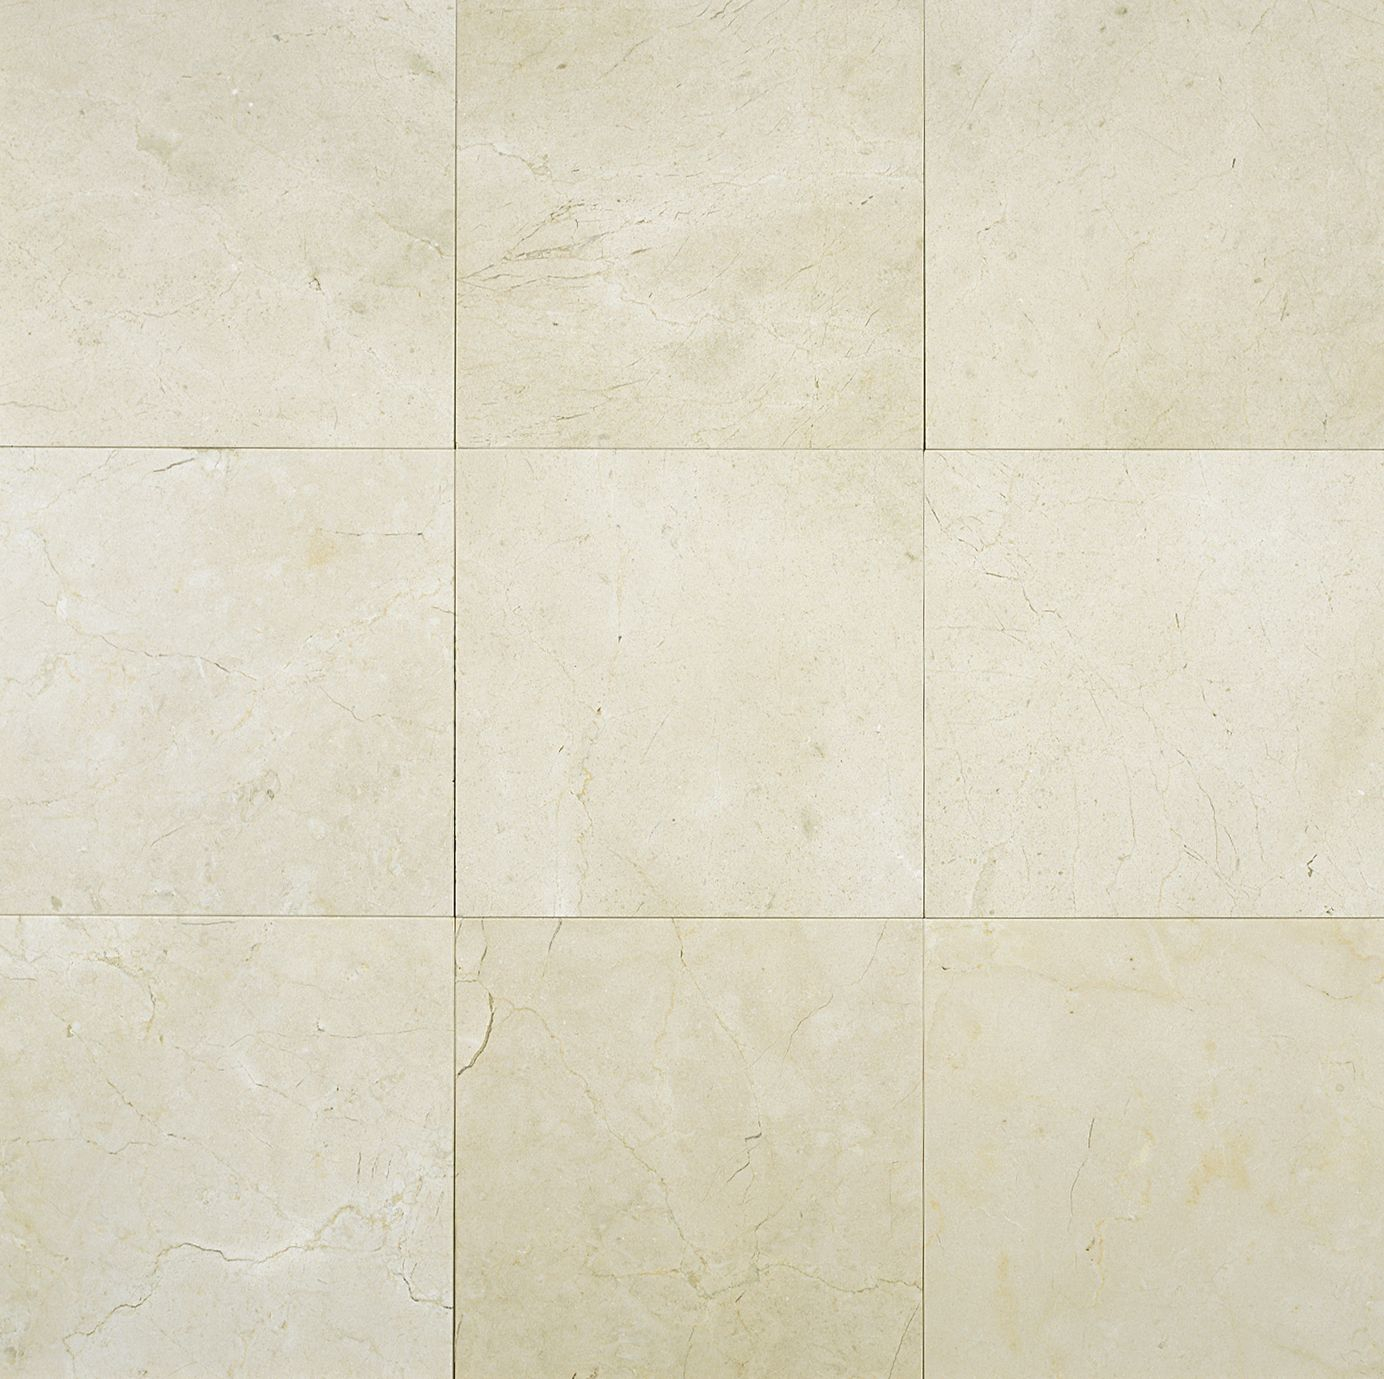 Crema Marfil Classico 6x6 Marble Tile Polished Enchapes within size 1384 X 1379